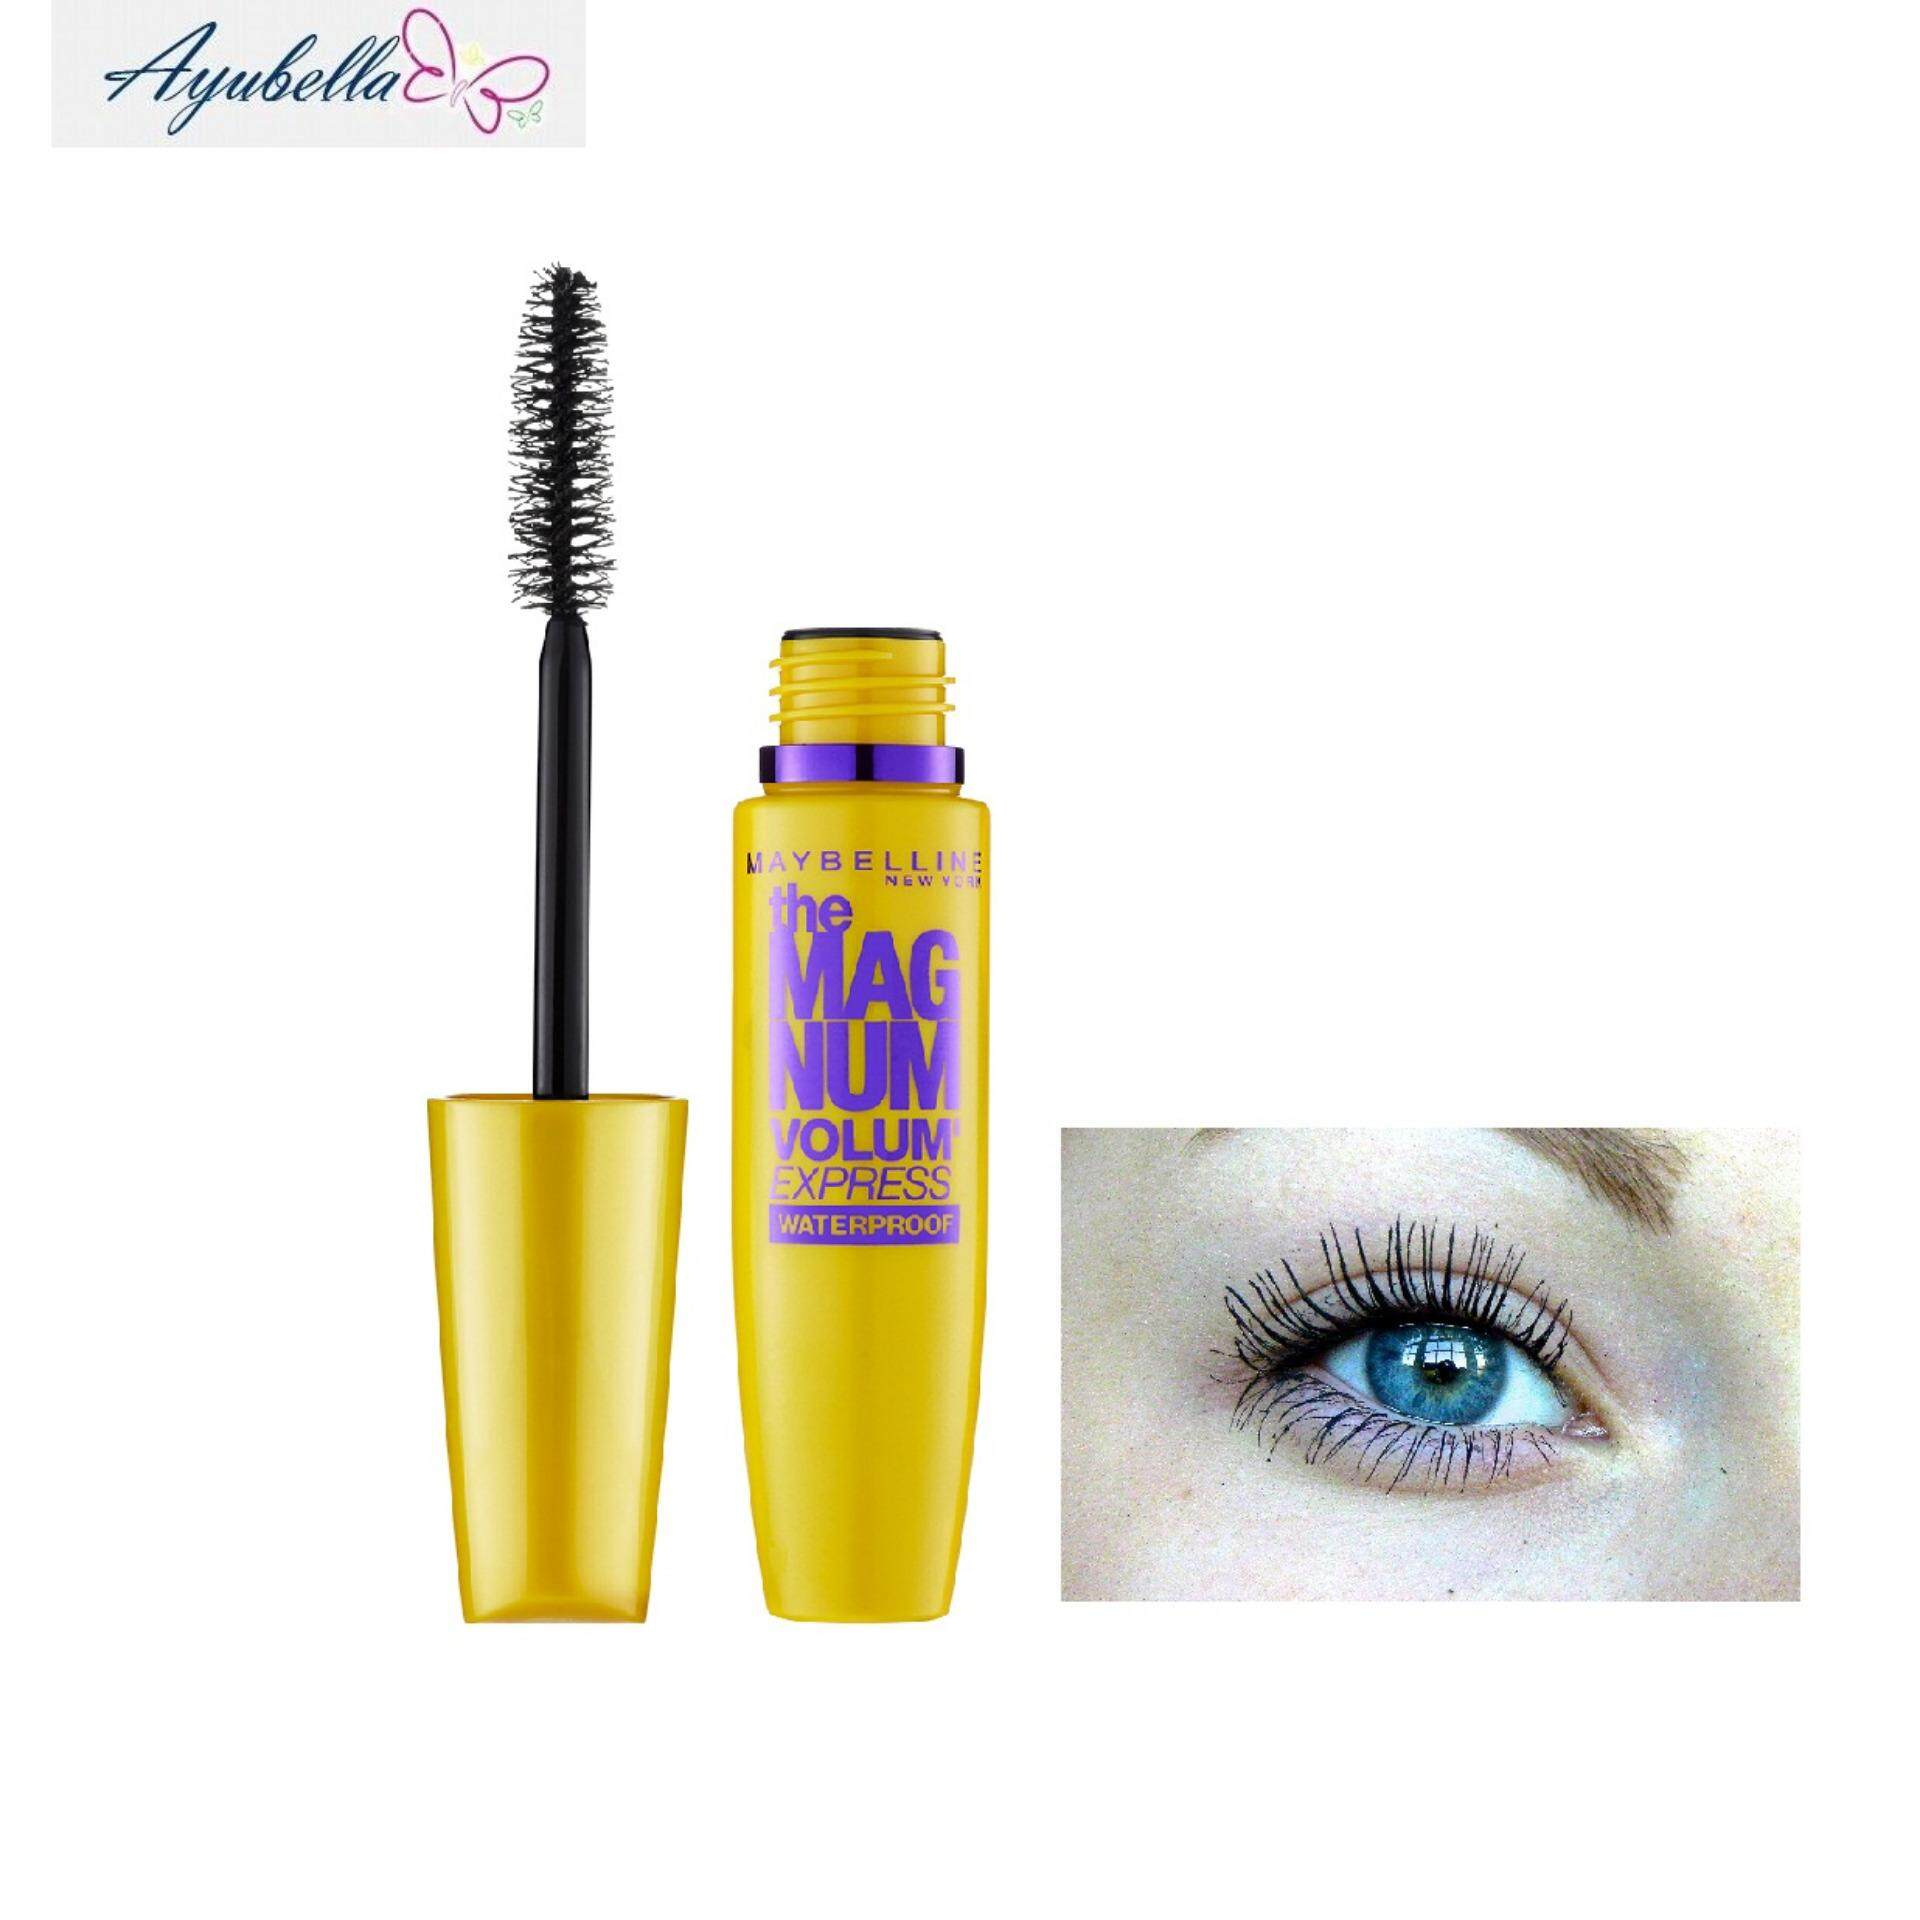 0d0a387d583 Maybelline the Magnum Volume Express Waterproof Mascara (Black) x 2